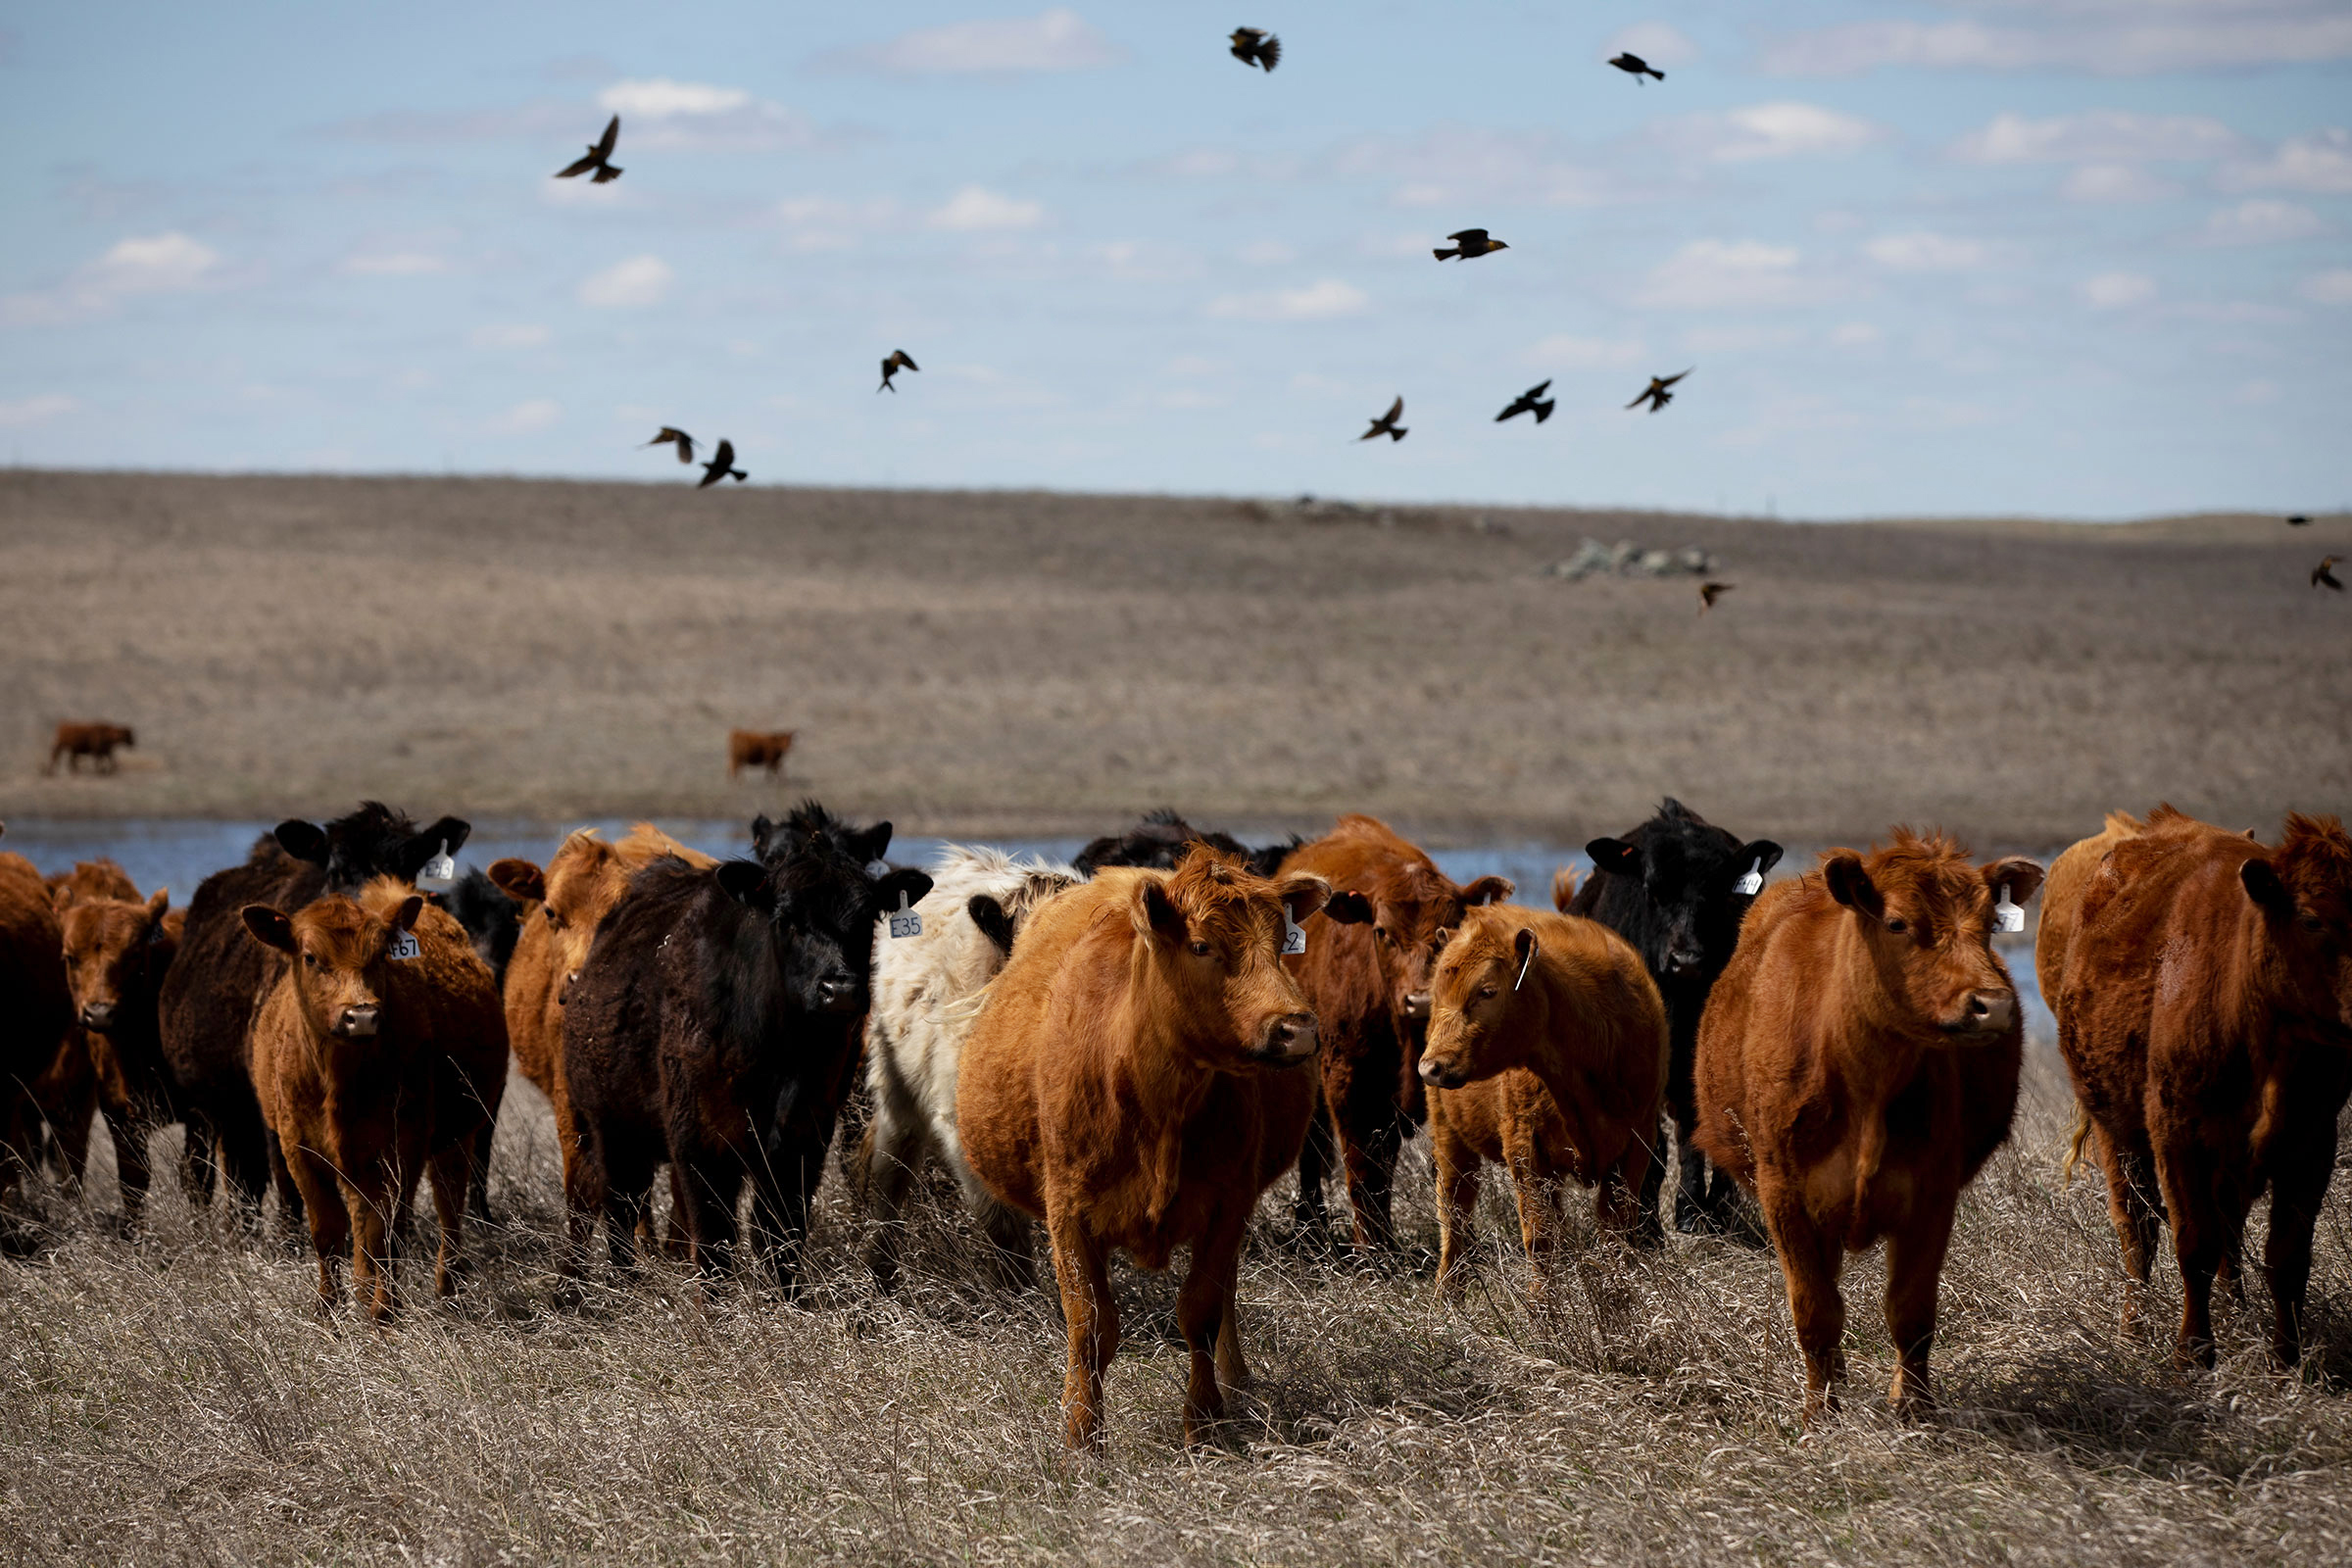 """Sand Ranch cattle graze near a pothole wetland. Cody and Deanna Sand (right) have found that helping grasslands recover benefits cows and birds. """"It's a win-win,"""" Cody says. Kristina Barker"""